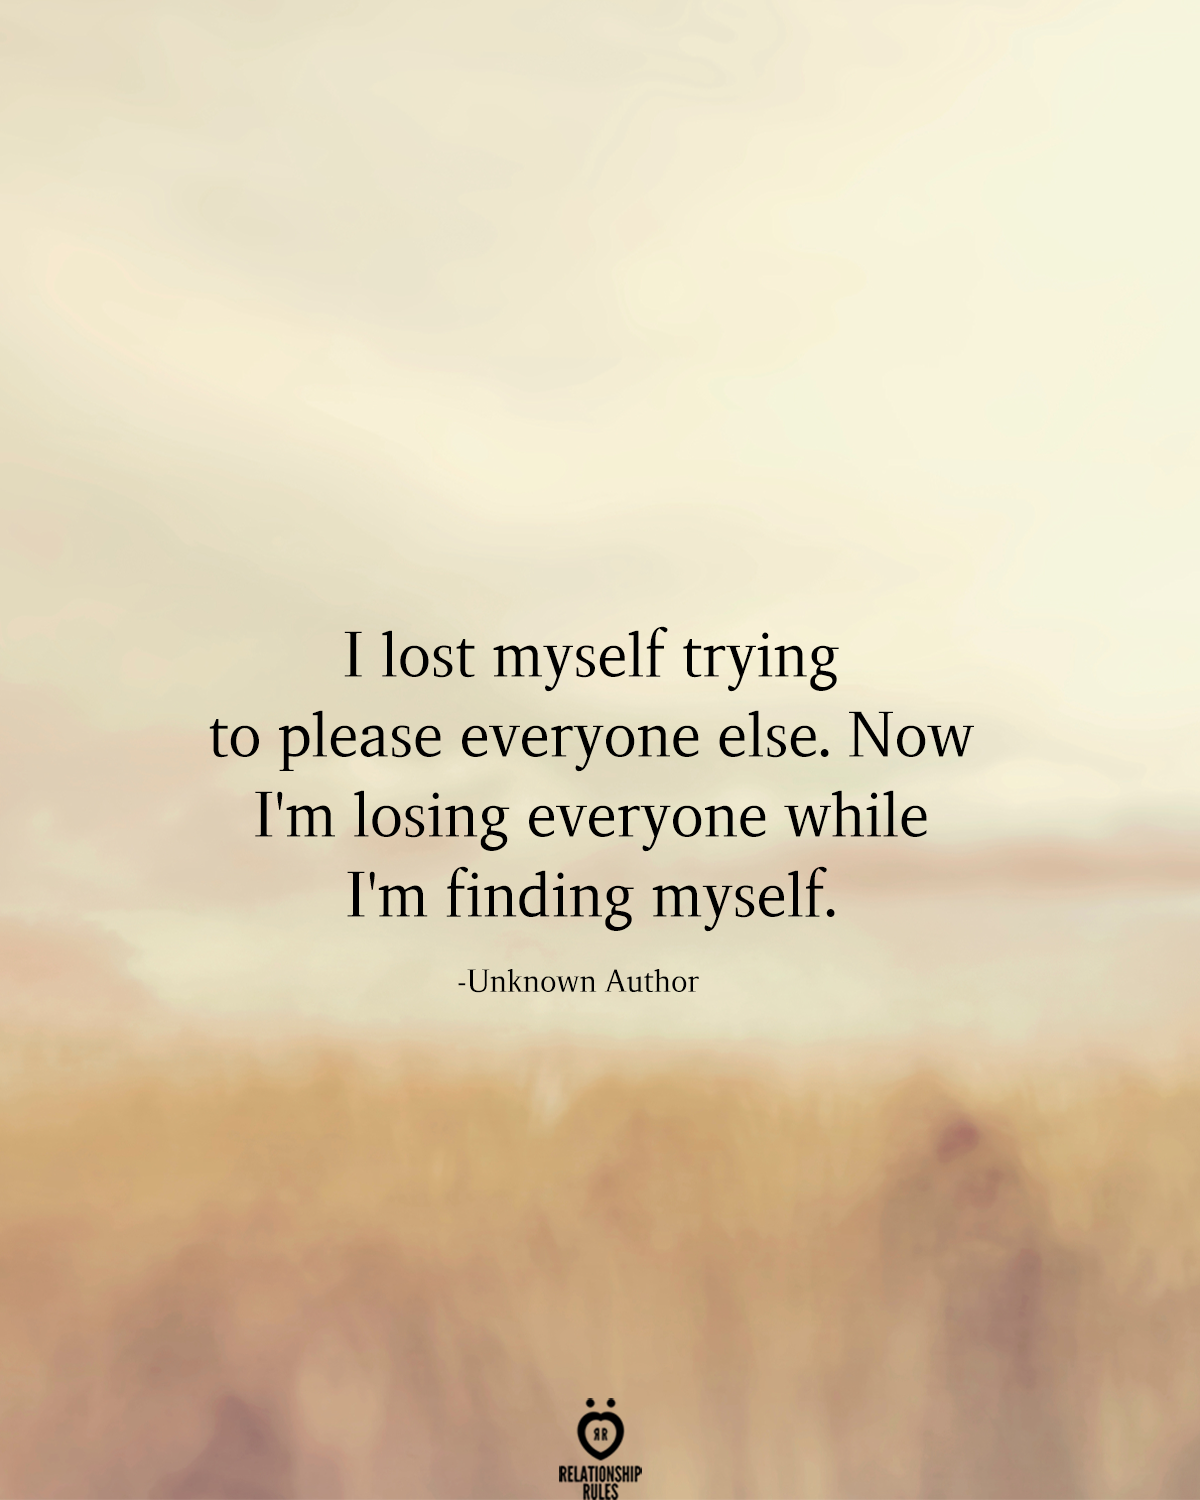 I Lost Myself Trying To Please Everyone Else. Now I'm Losing Everyone While I'm Finding Myself